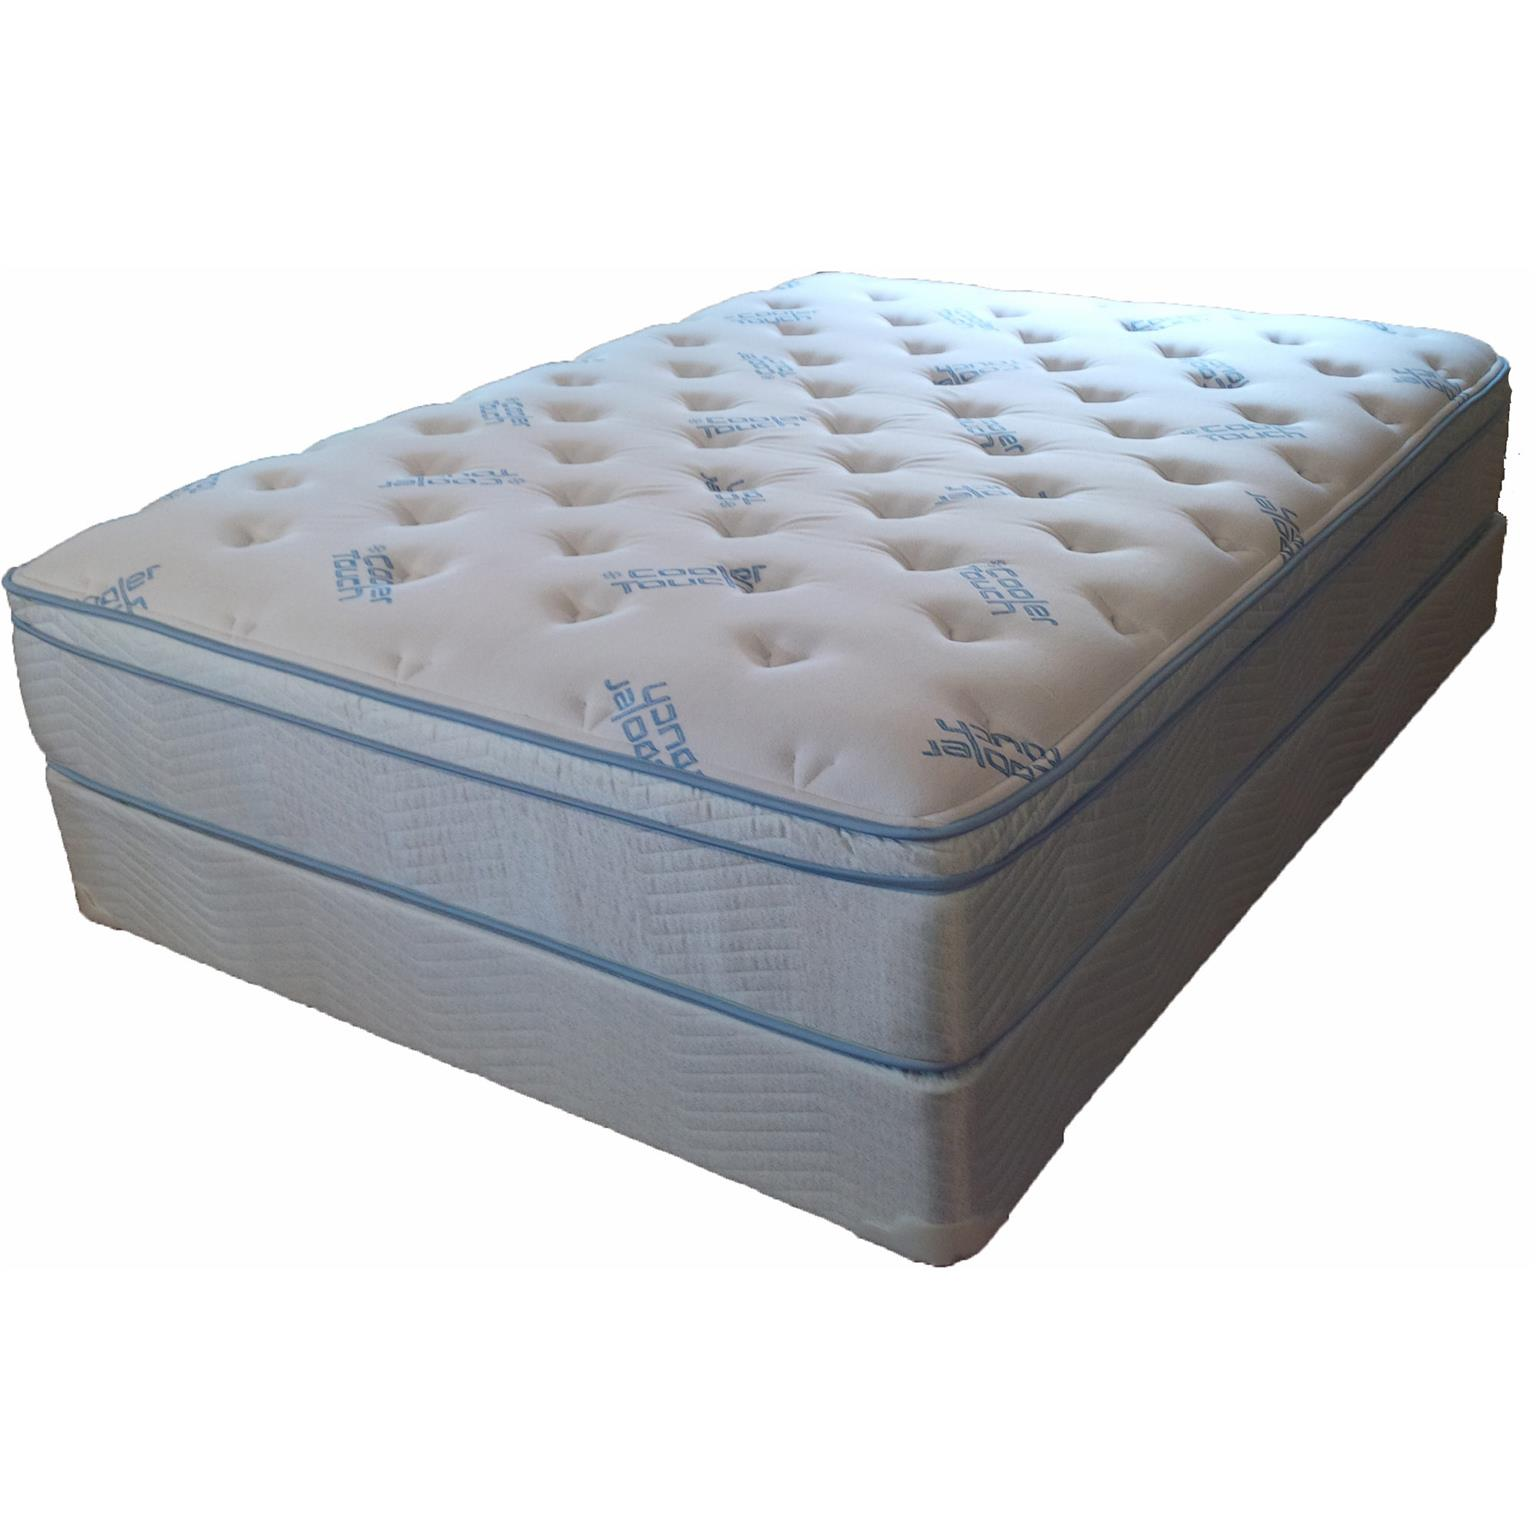 Machine making beds for sale R75000